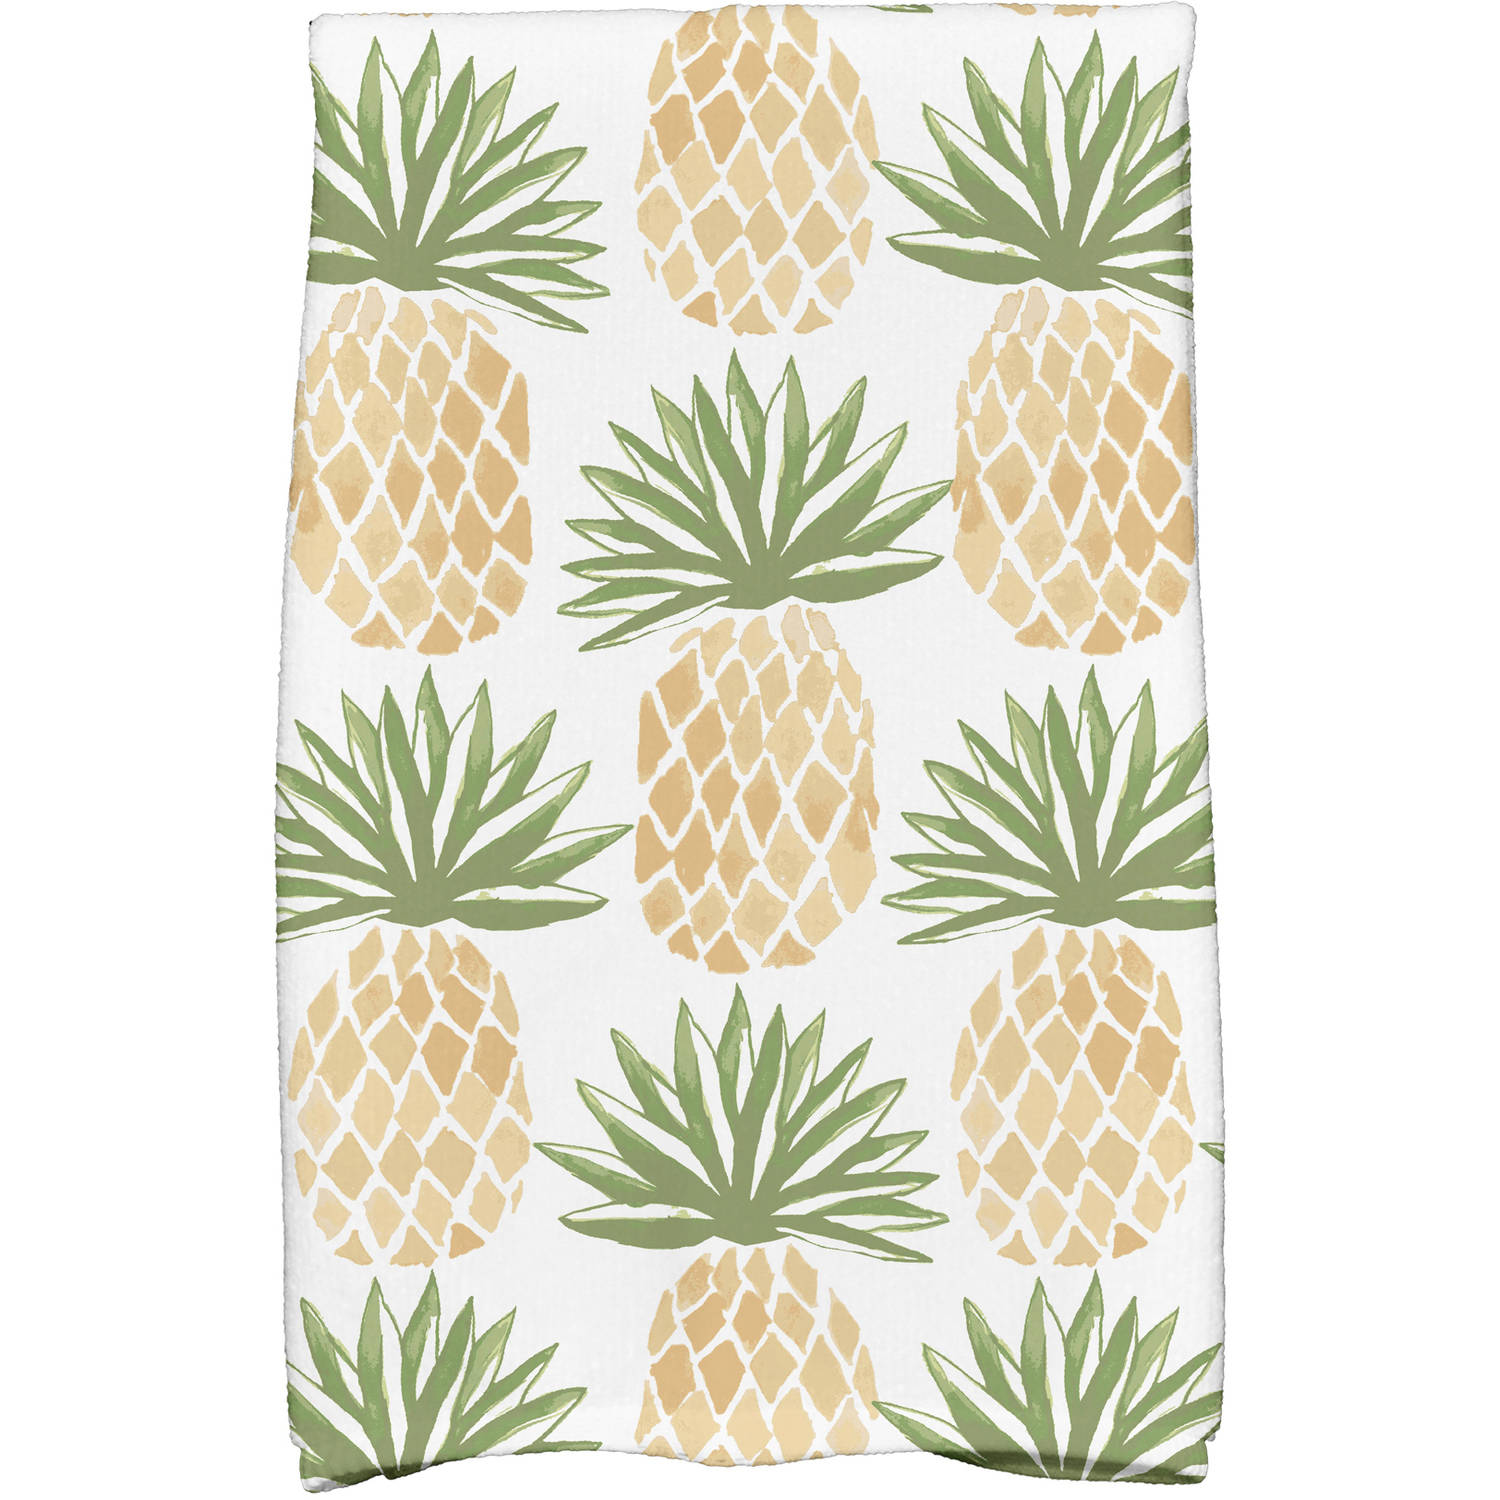 "Simply Daisy 16"" x 25"" Tossed Pineapple Geometric Print Kitchen Towels by E By Design"